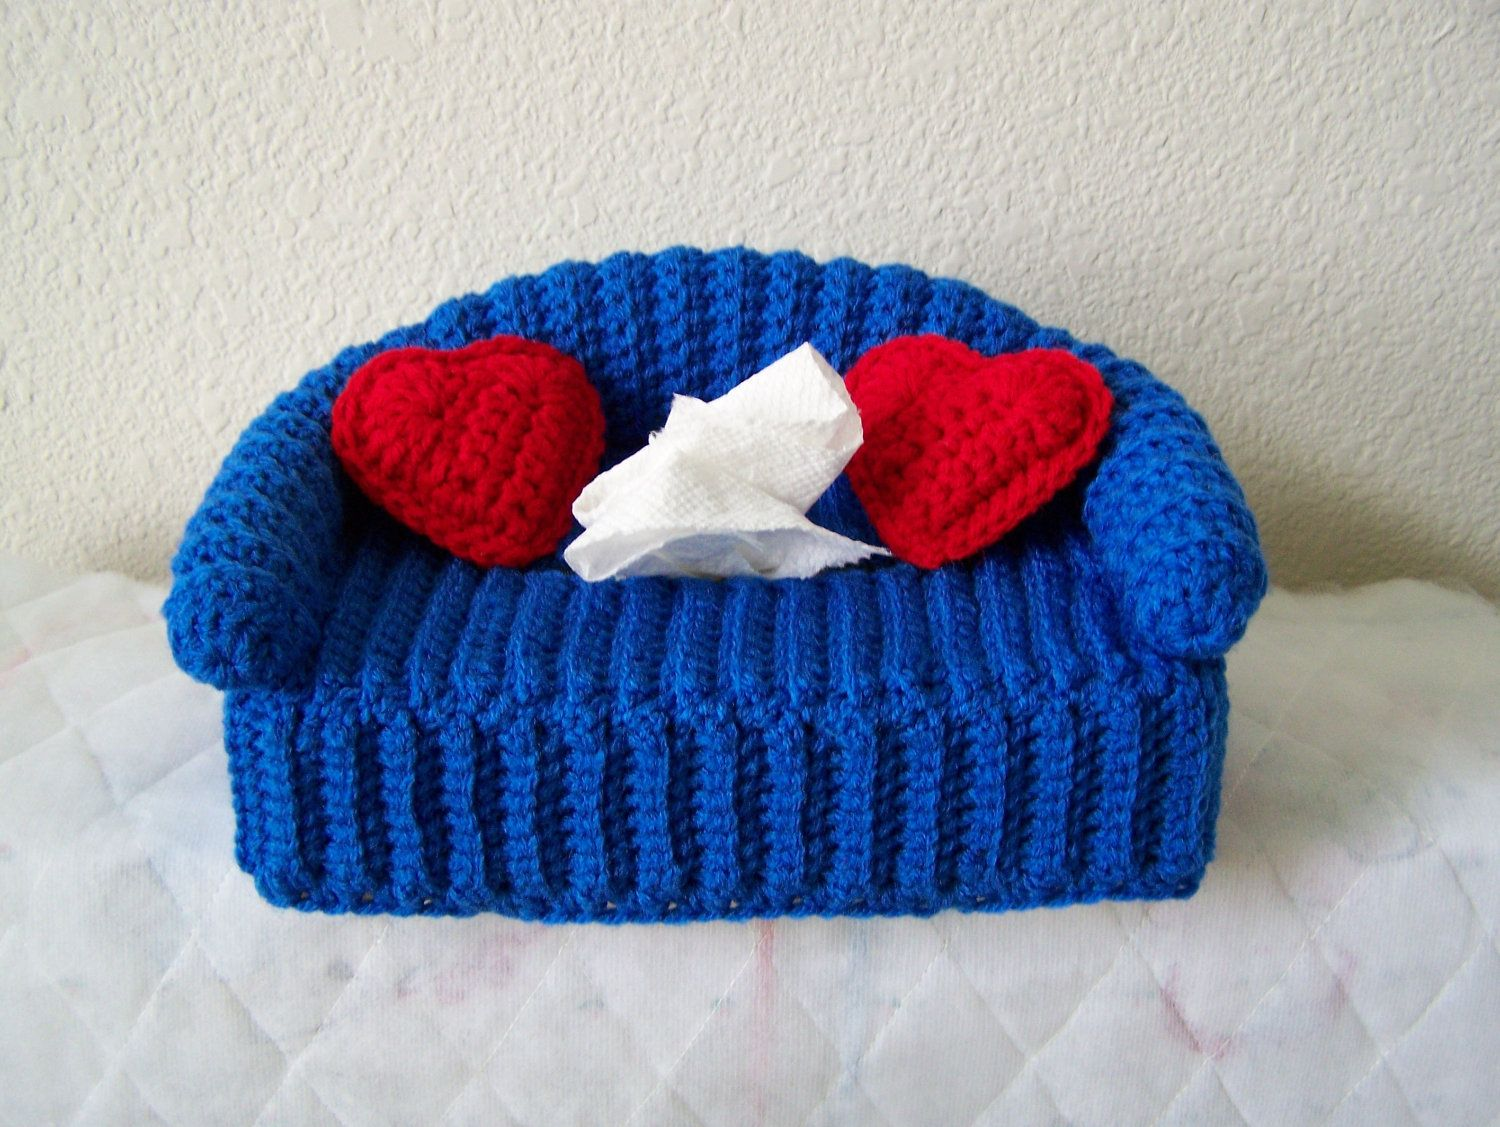 Crocheted Tissue Box Cover With Pillows Crochet Couch